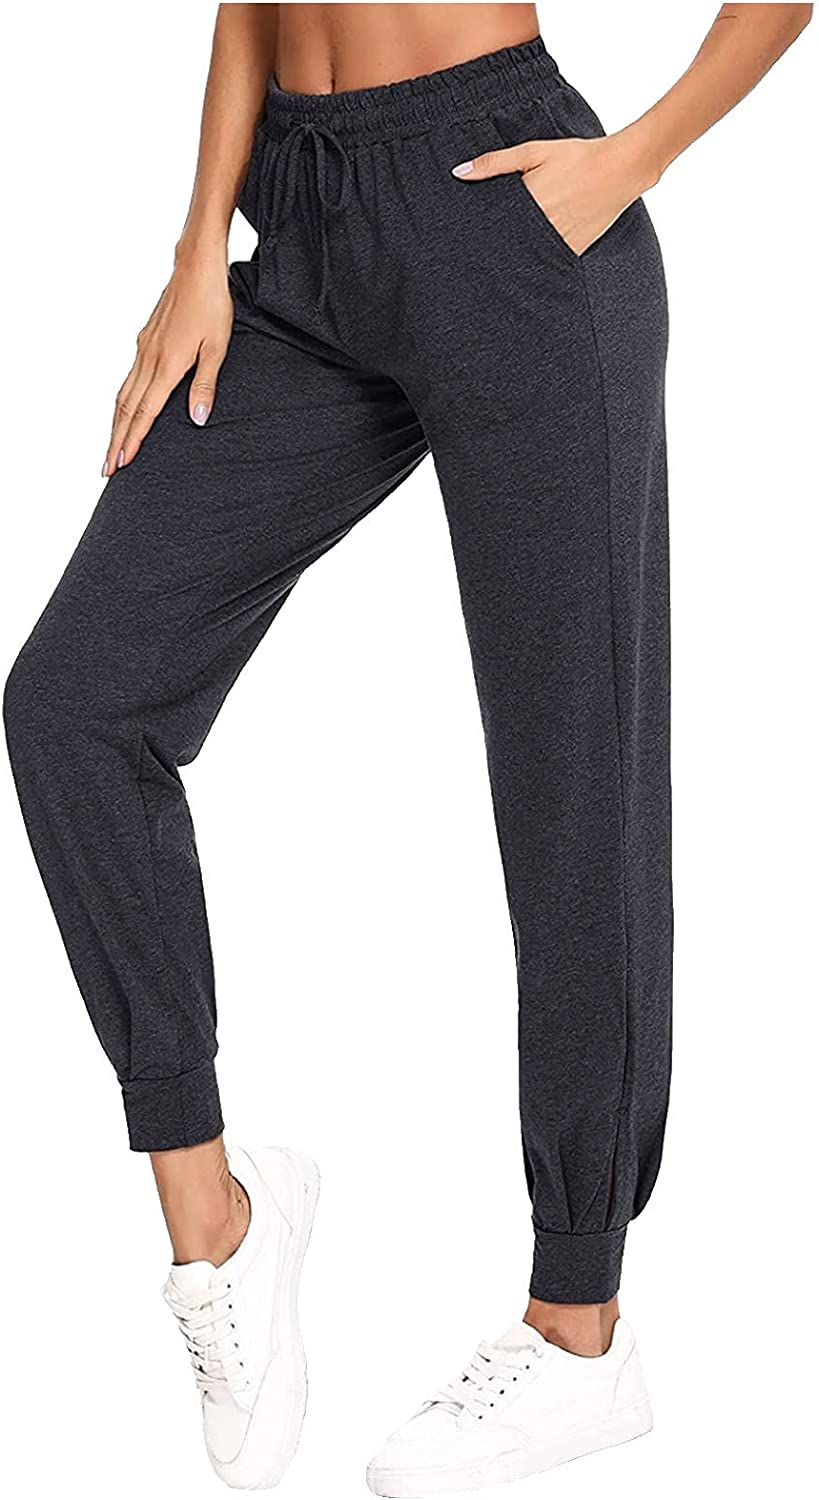 ZAKIO 2021 Lounge Joggers for Women Yoga Pants Loose Workout Sweatpants Comfy Athletic Active Trousers with Pockets